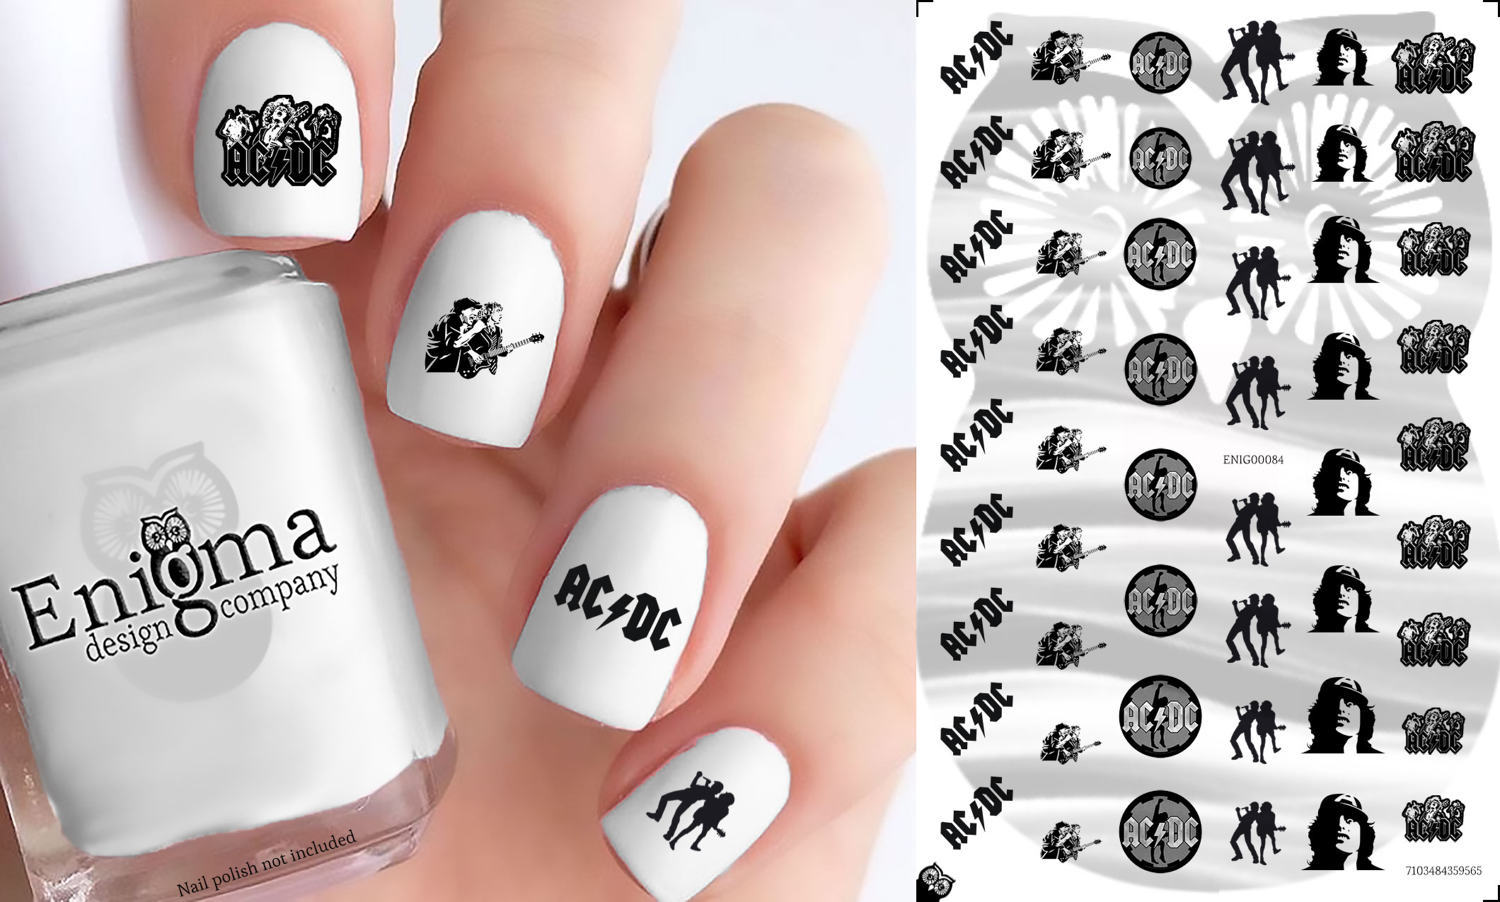 AC/DC Nail Decals (Set of 51) - $4.95